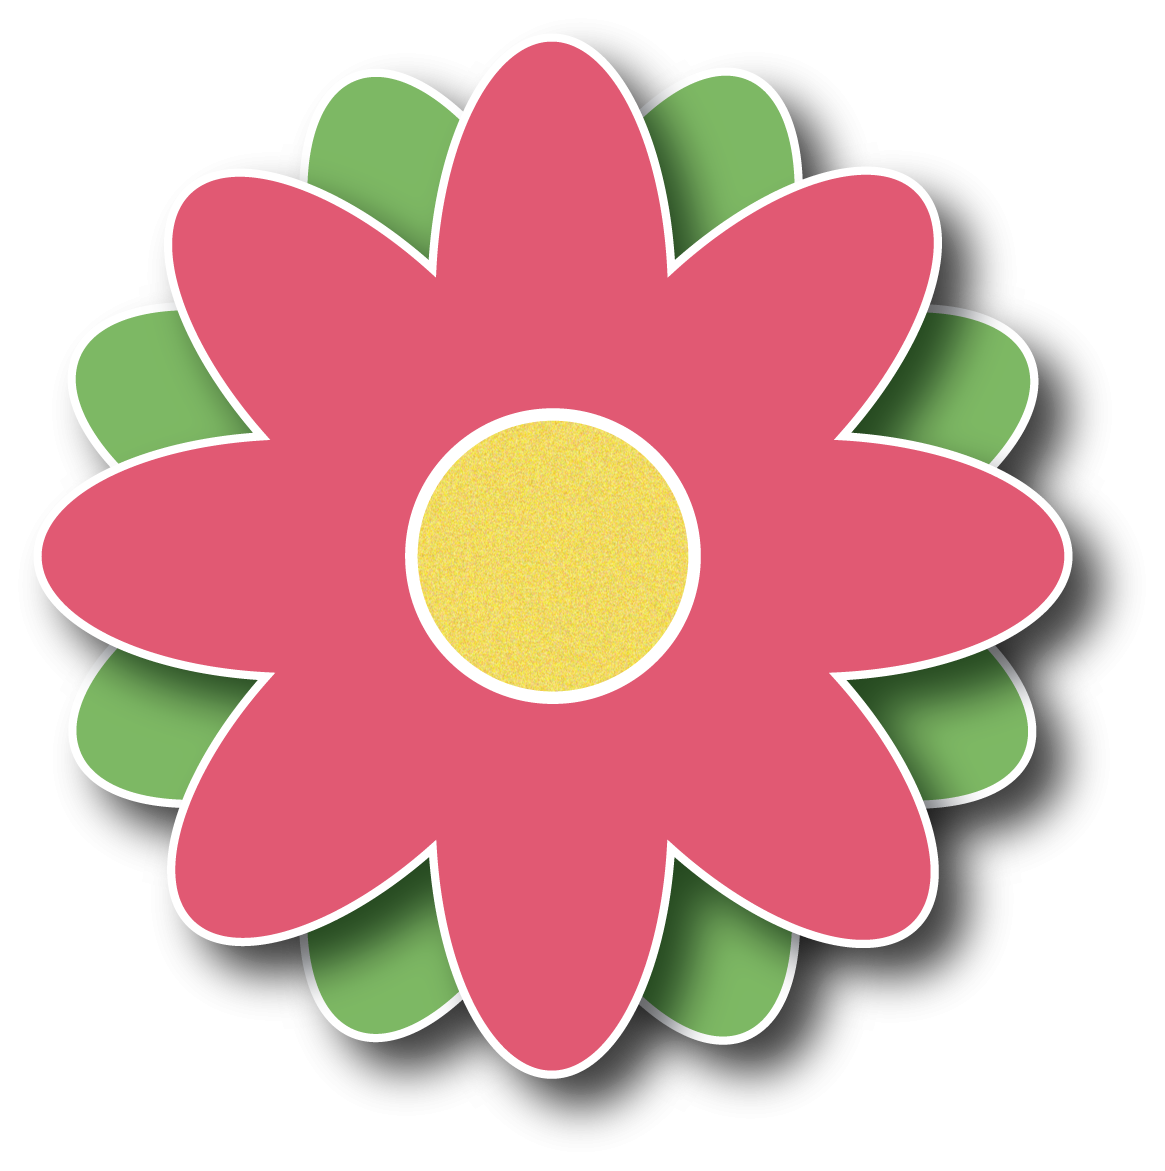 1684246582-spring-flowers-clip .